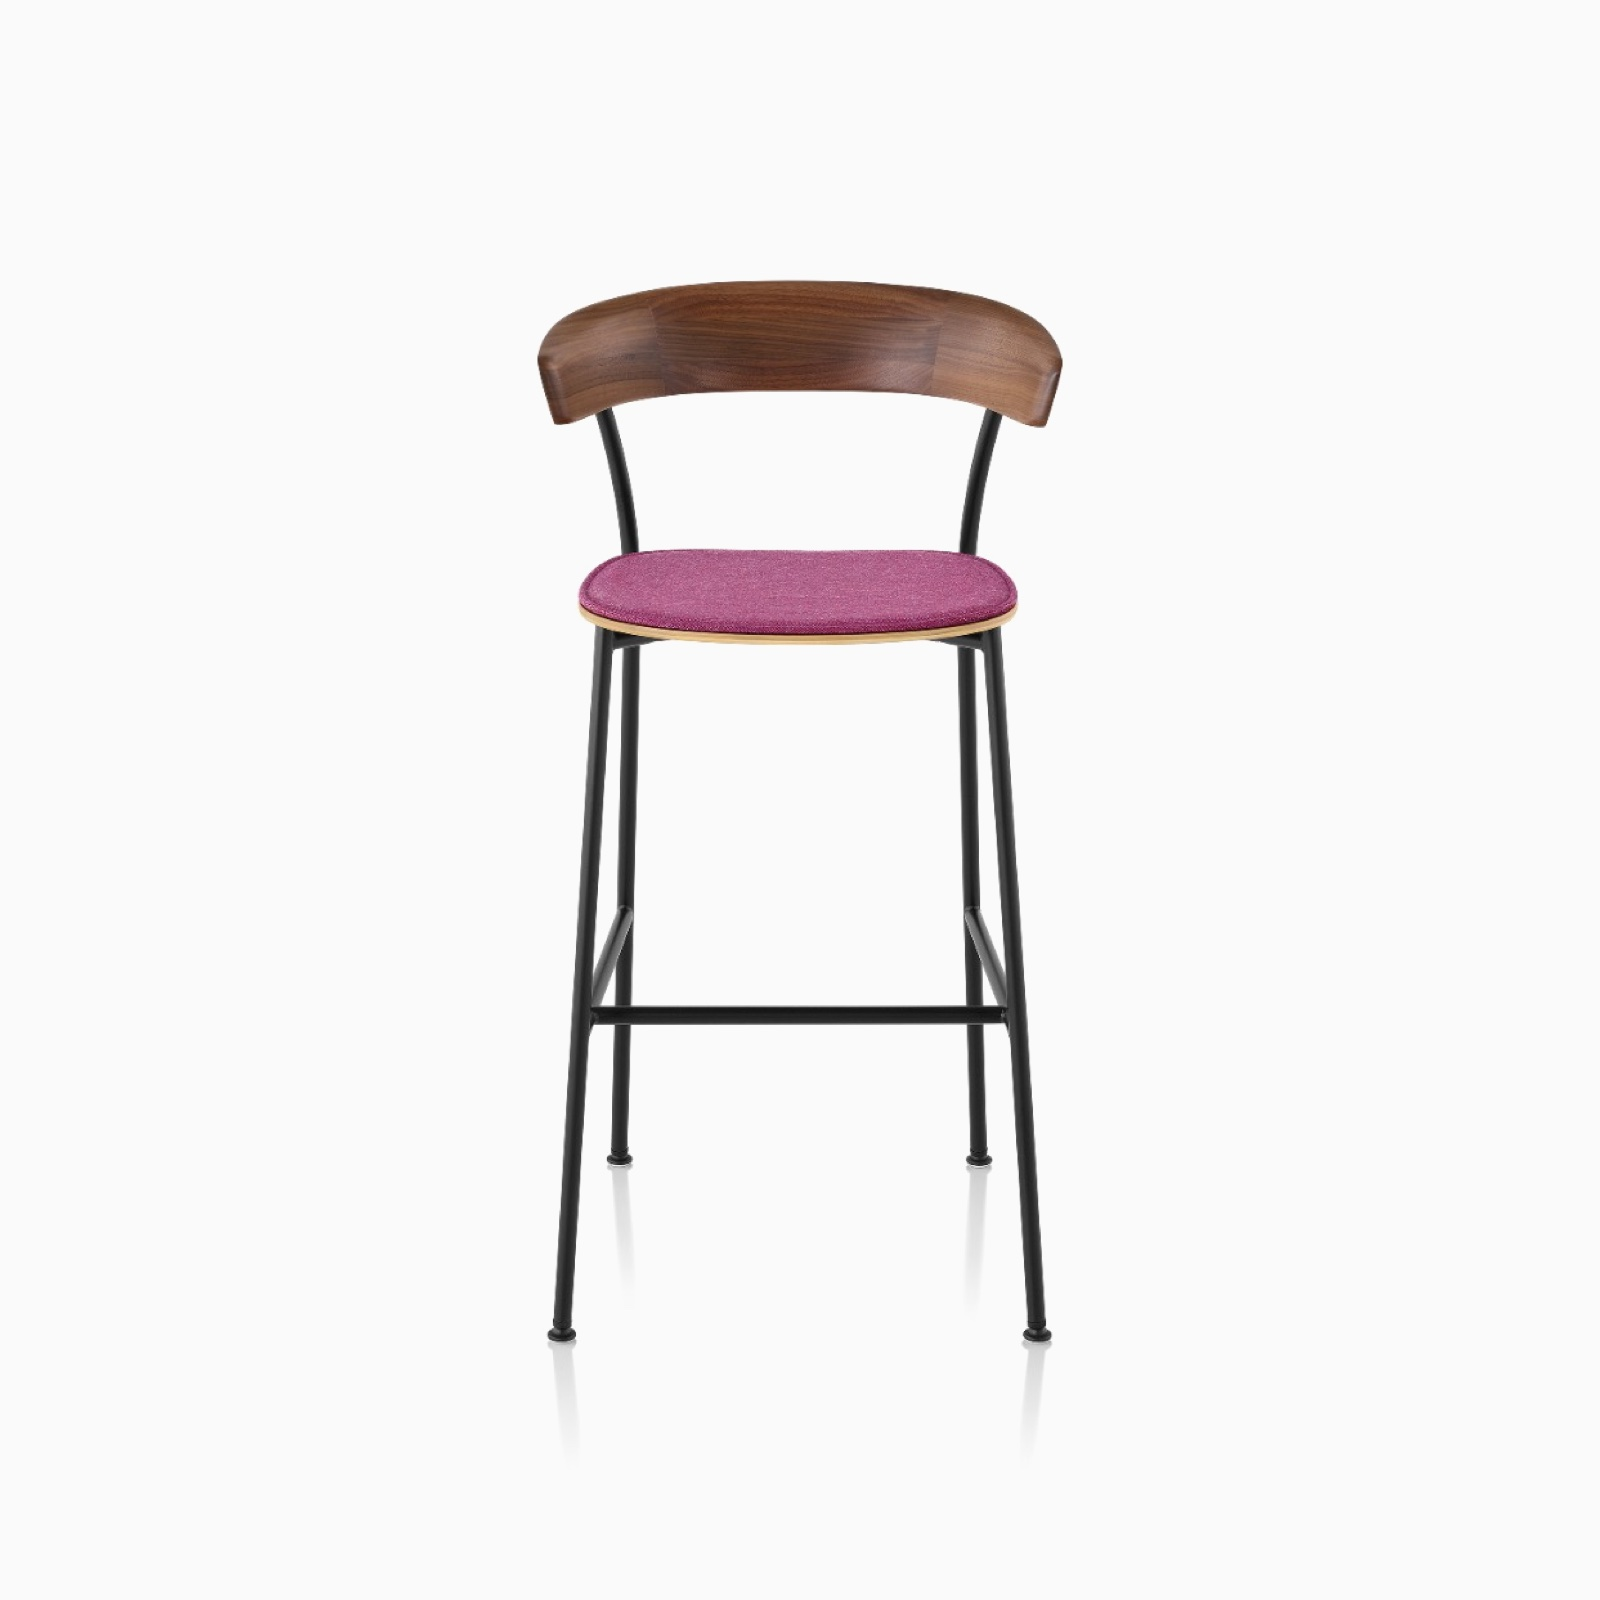 A bar height Leeway Stool with a Bellano Magenta seat cushion.